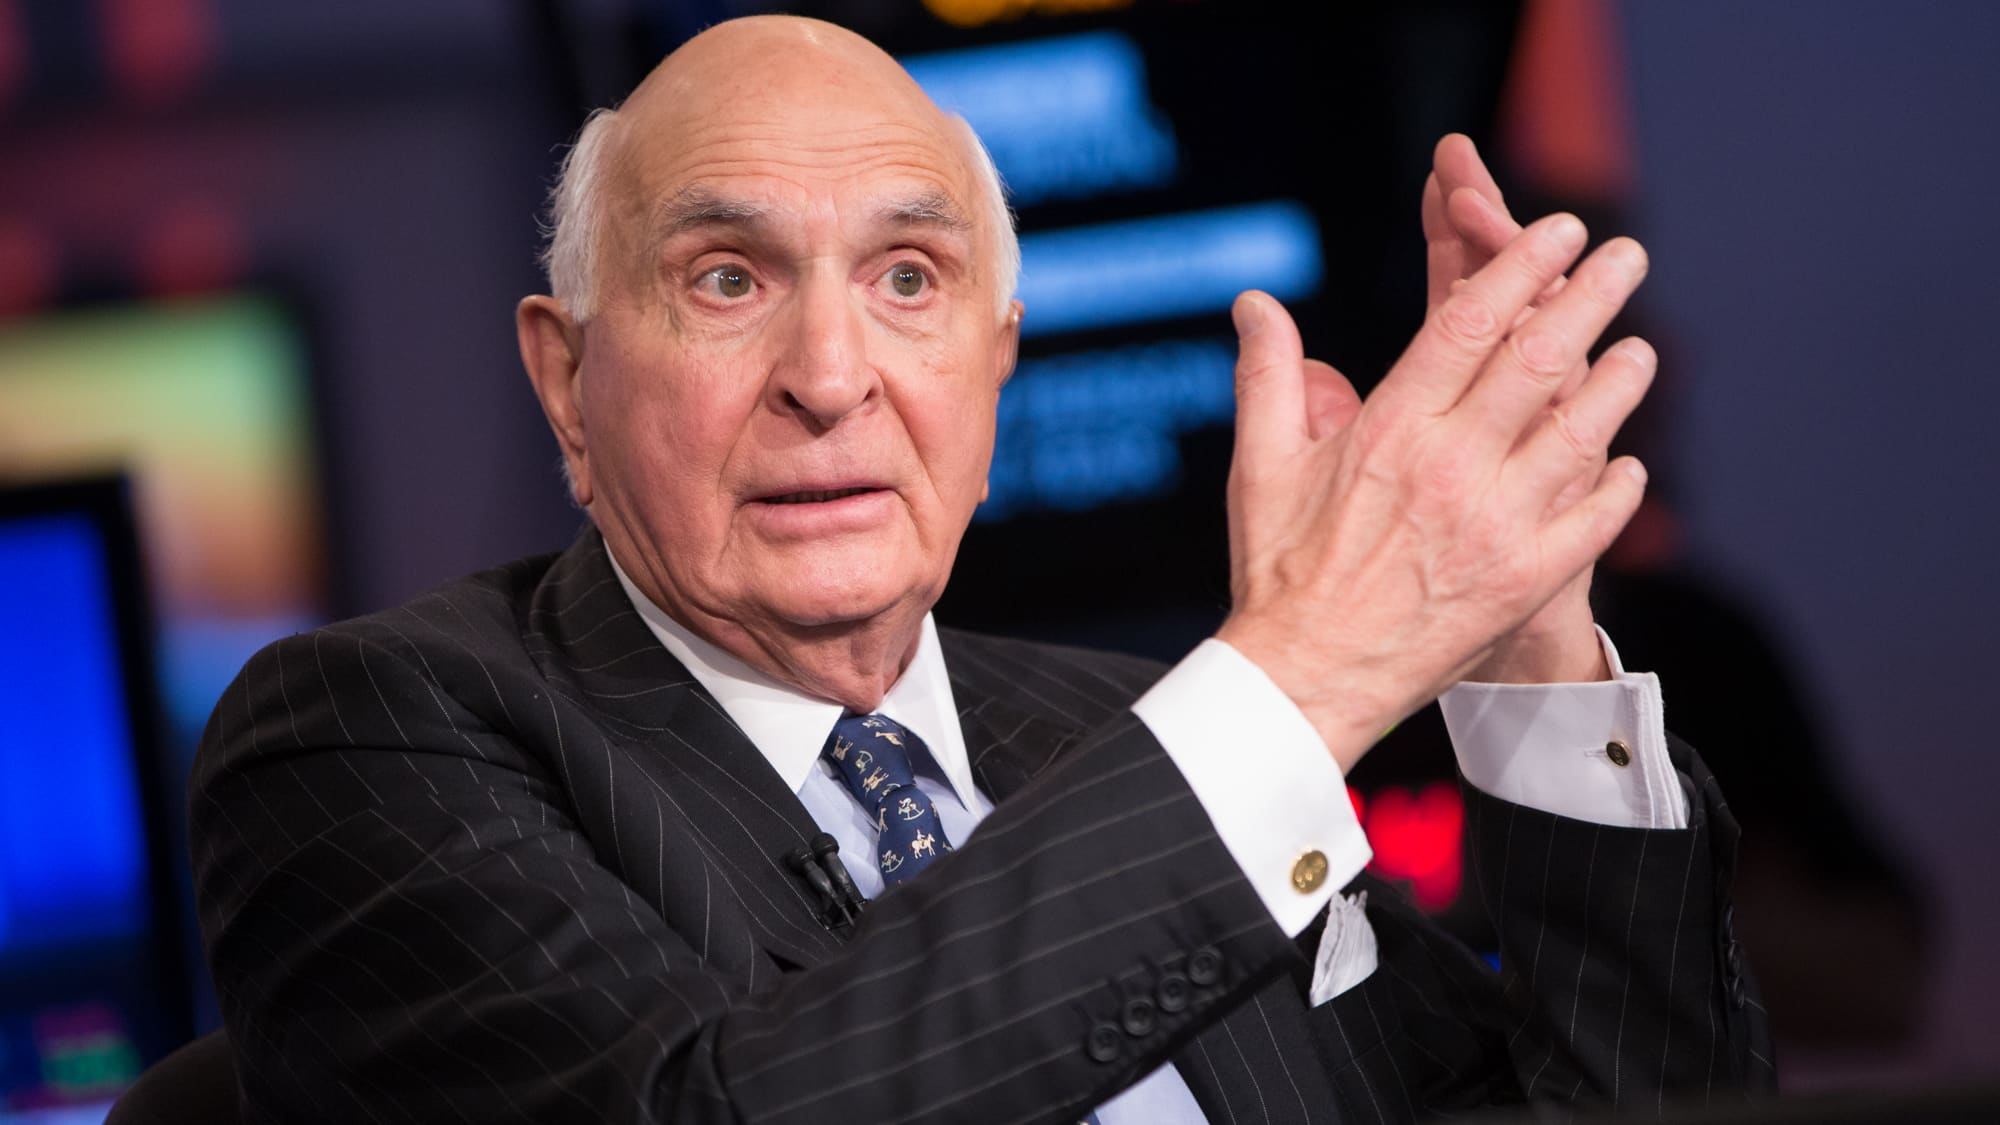 Get vaccinated or fired — Ken Langone says his businesses will mandate it after full FDA approval